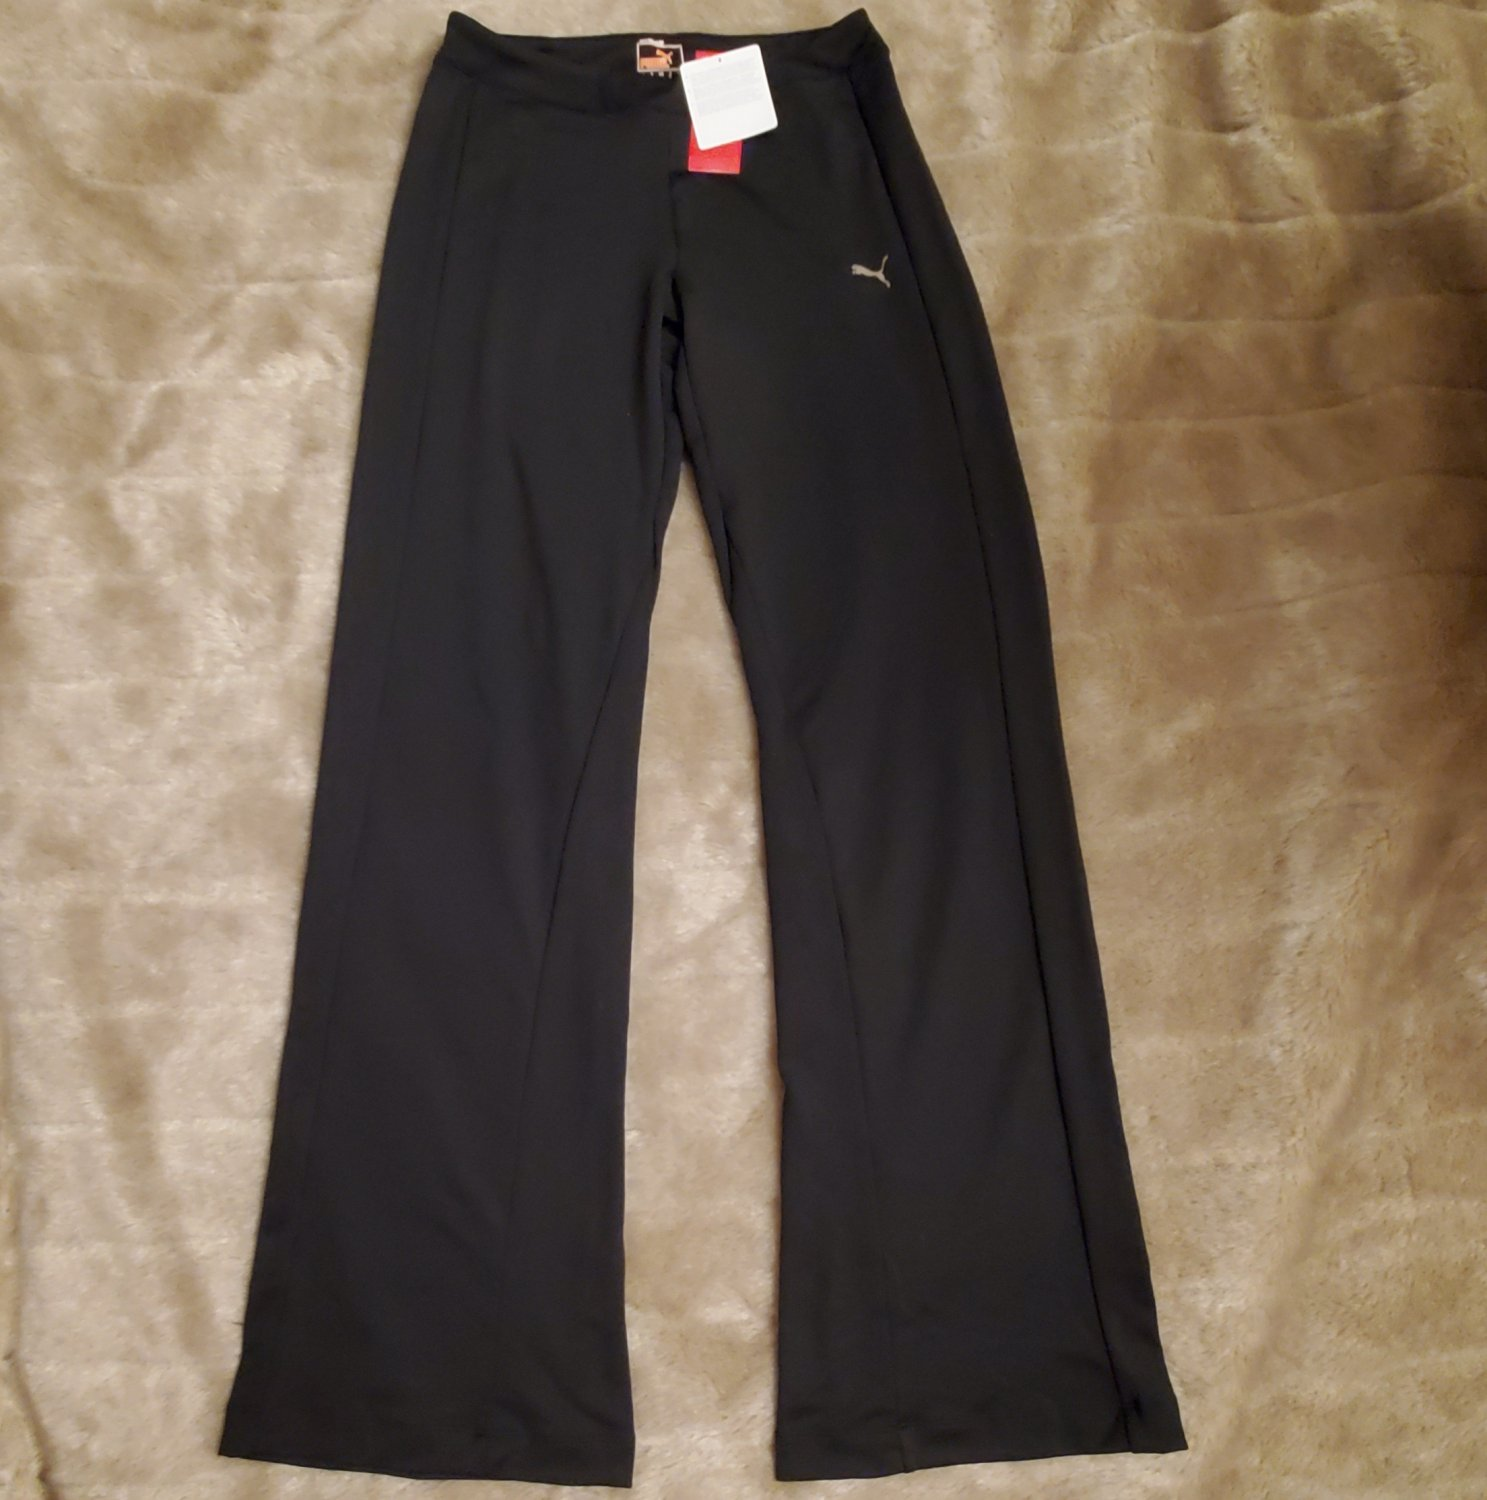 NEW Puma $55 TP workout pants, loose fit